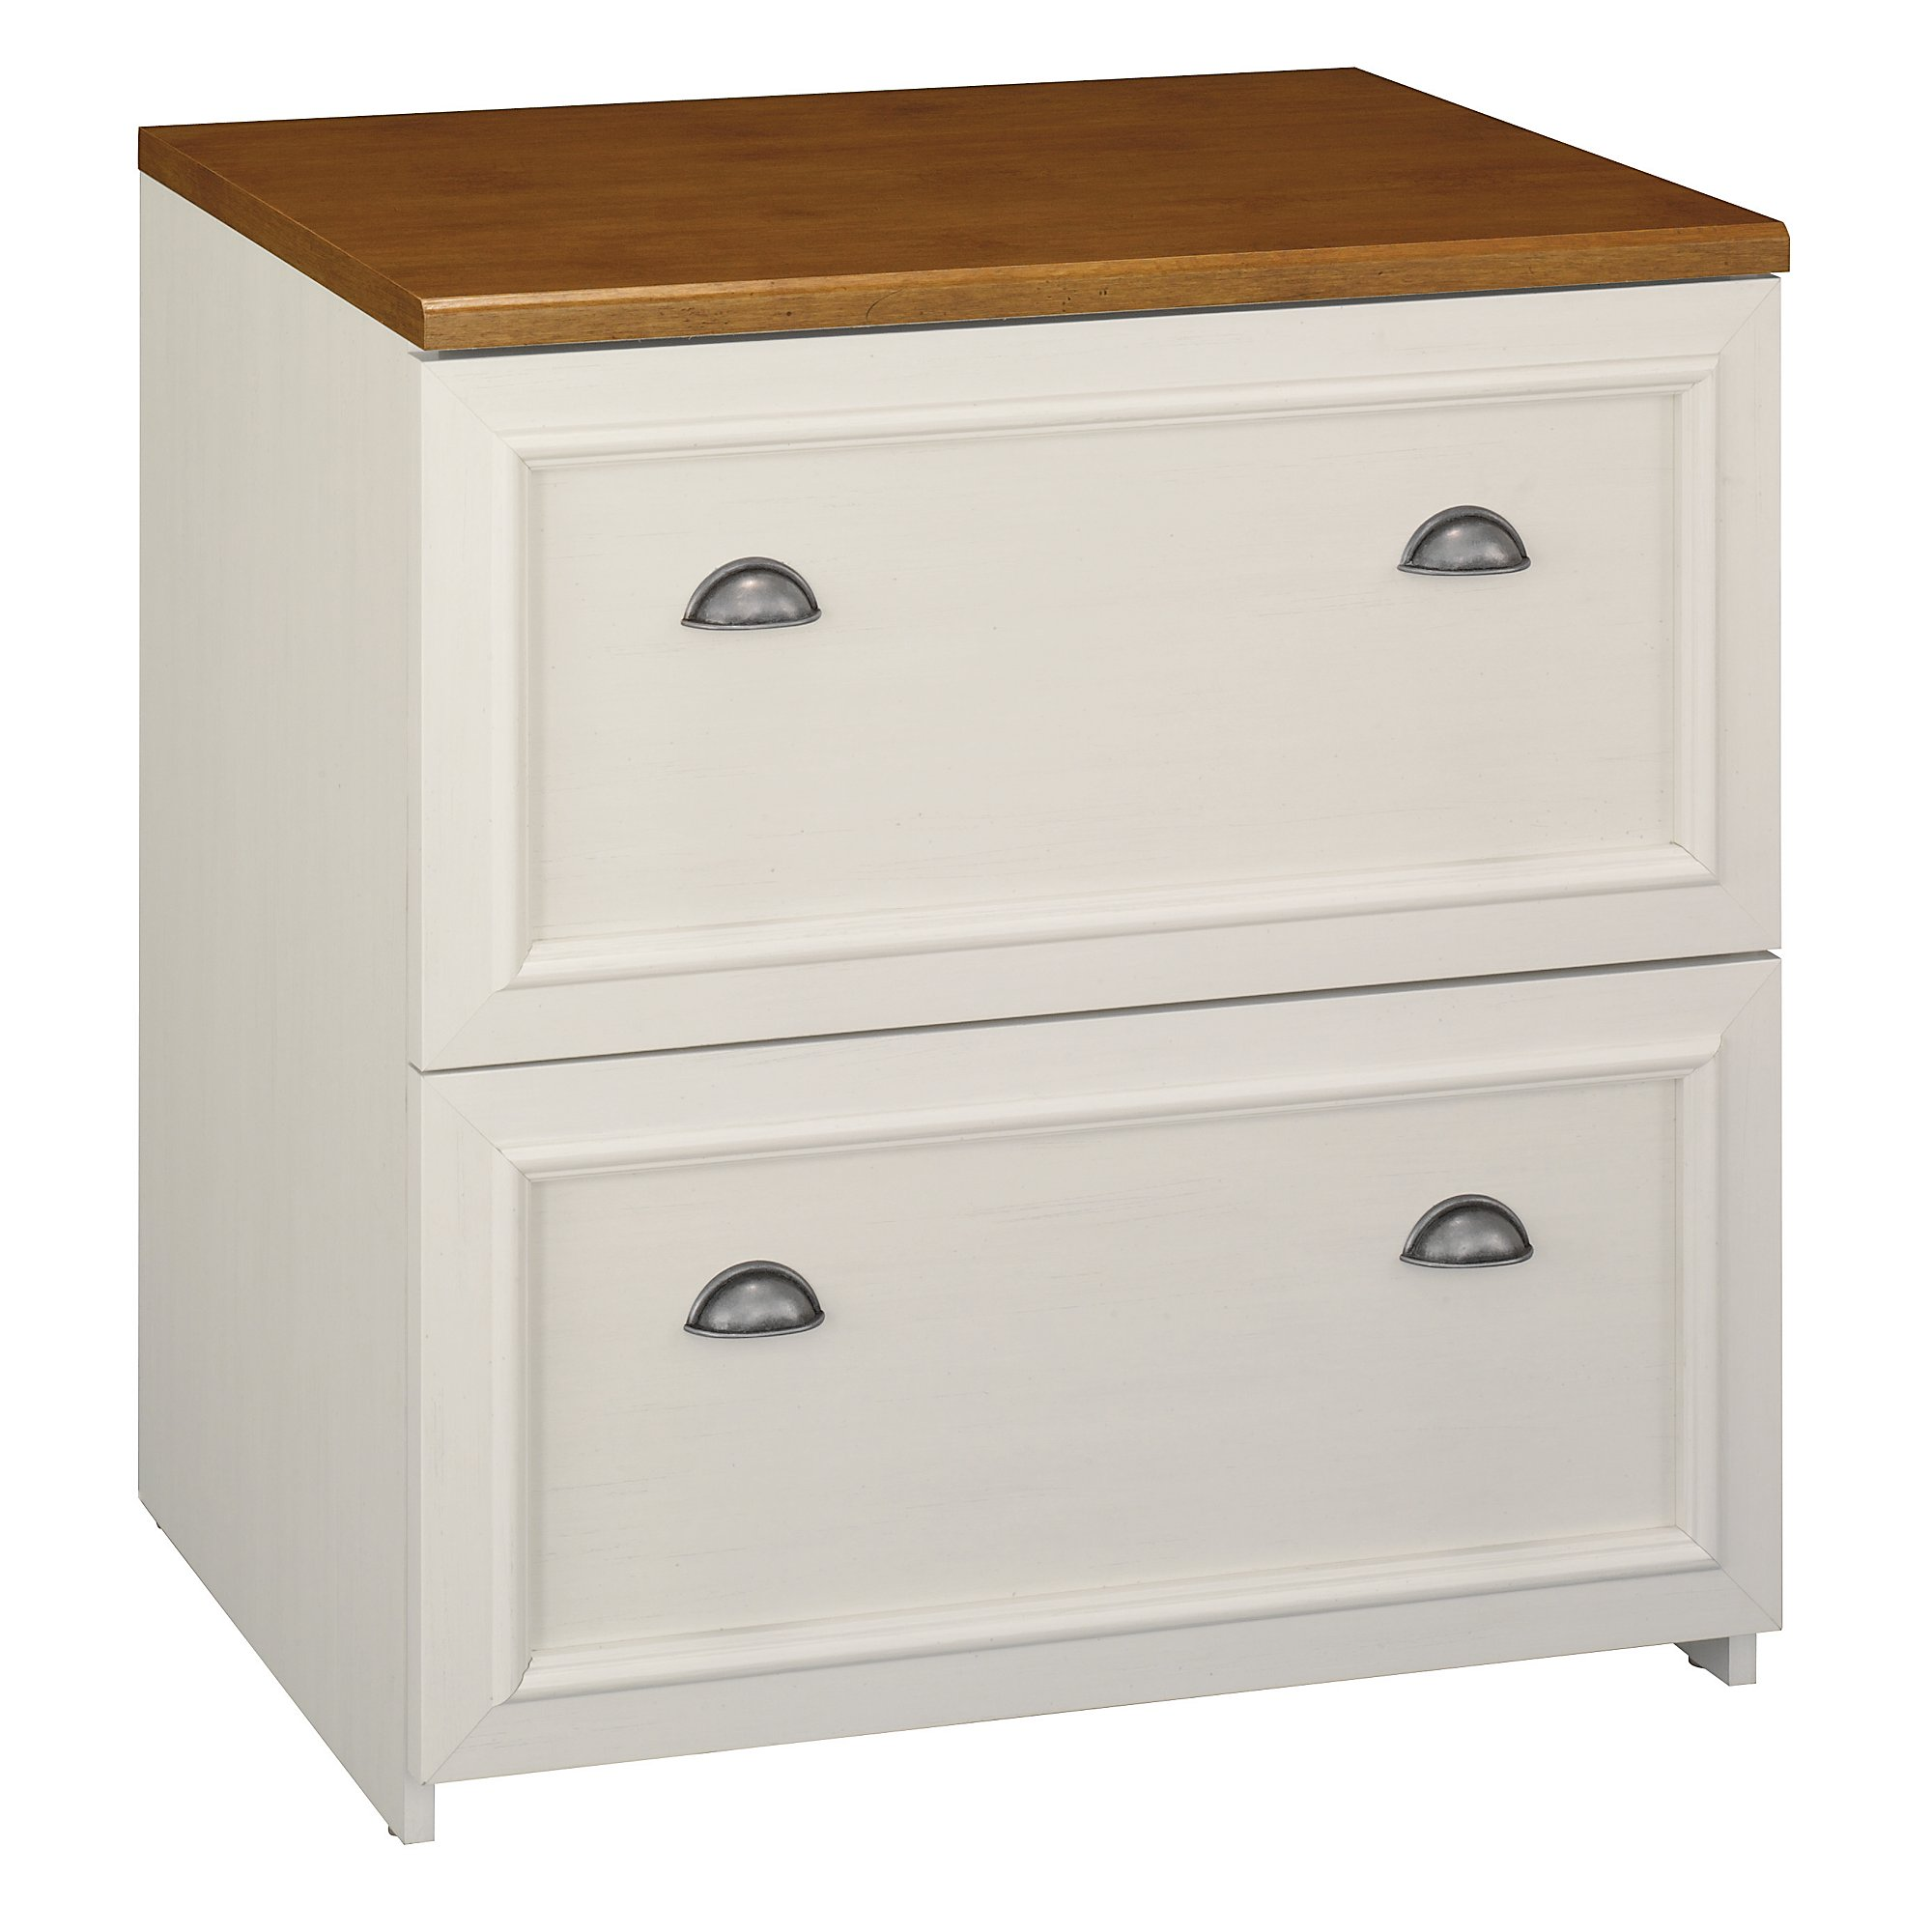 Exceptionnel Bush Fairview Collection L Shaped Desk With Hutch And 2 Drawer Lateral File  Cabinet, Antique White   Walmart.com